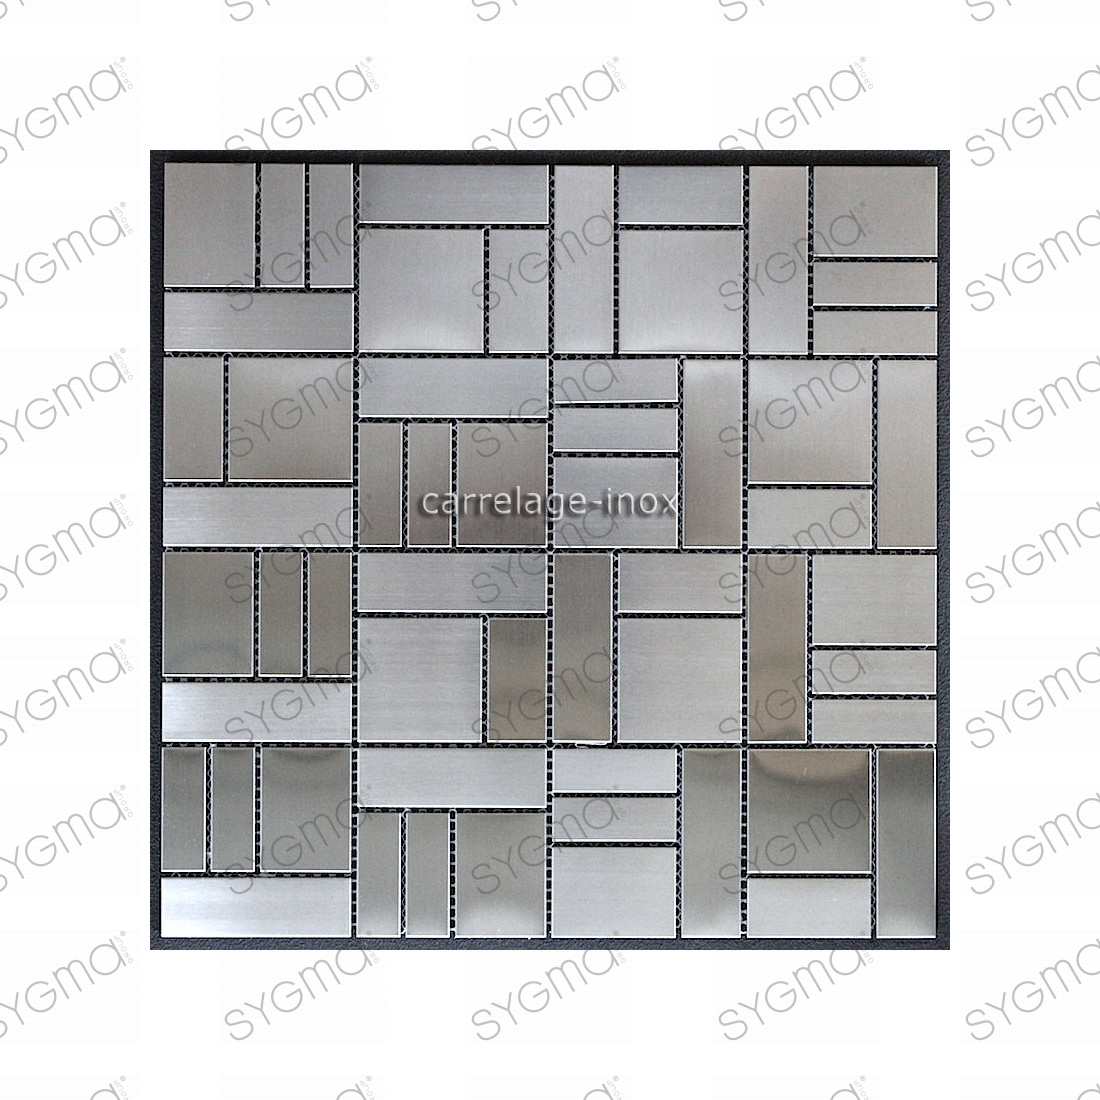 Carrelage inox mosaique modele erato carrelage for Carrelage inox fr